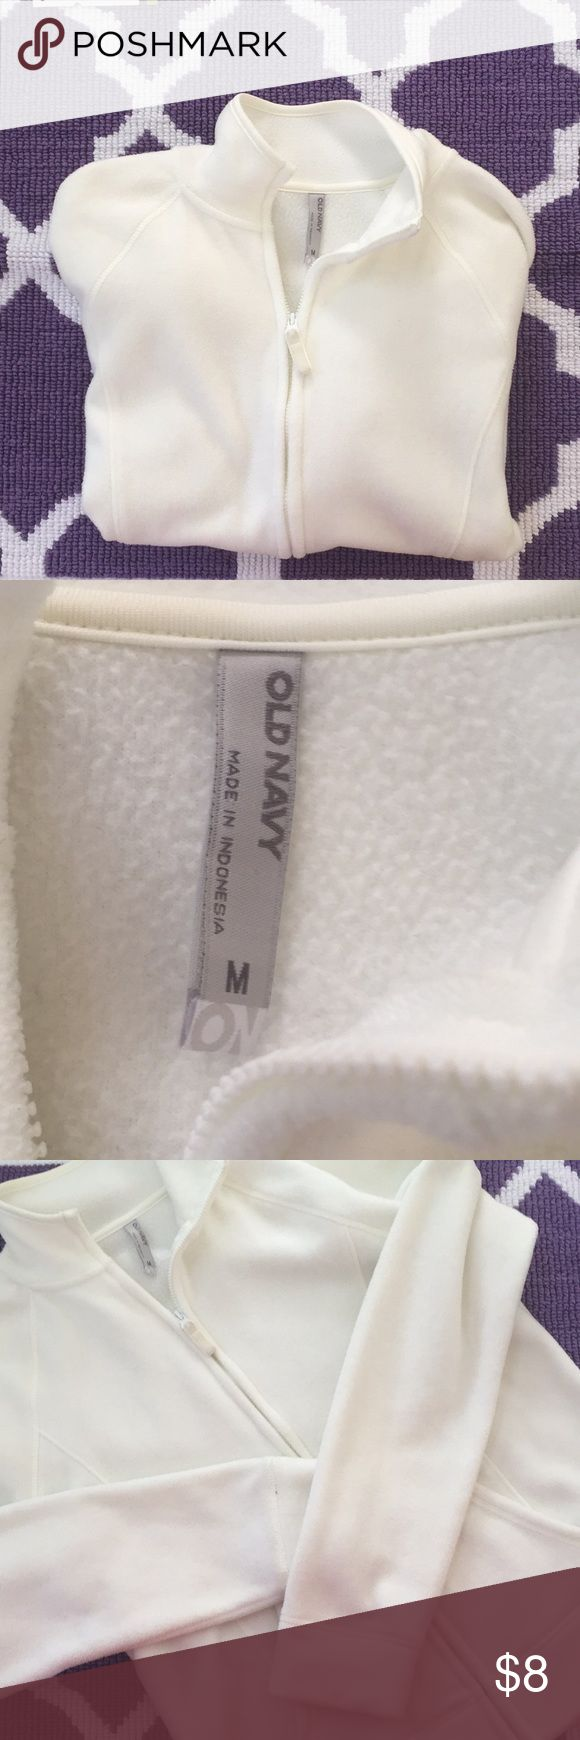 🌀OLD NAVY FLEECE🌀 Off white Old Navy fleece in used condition. Old Navy Tops